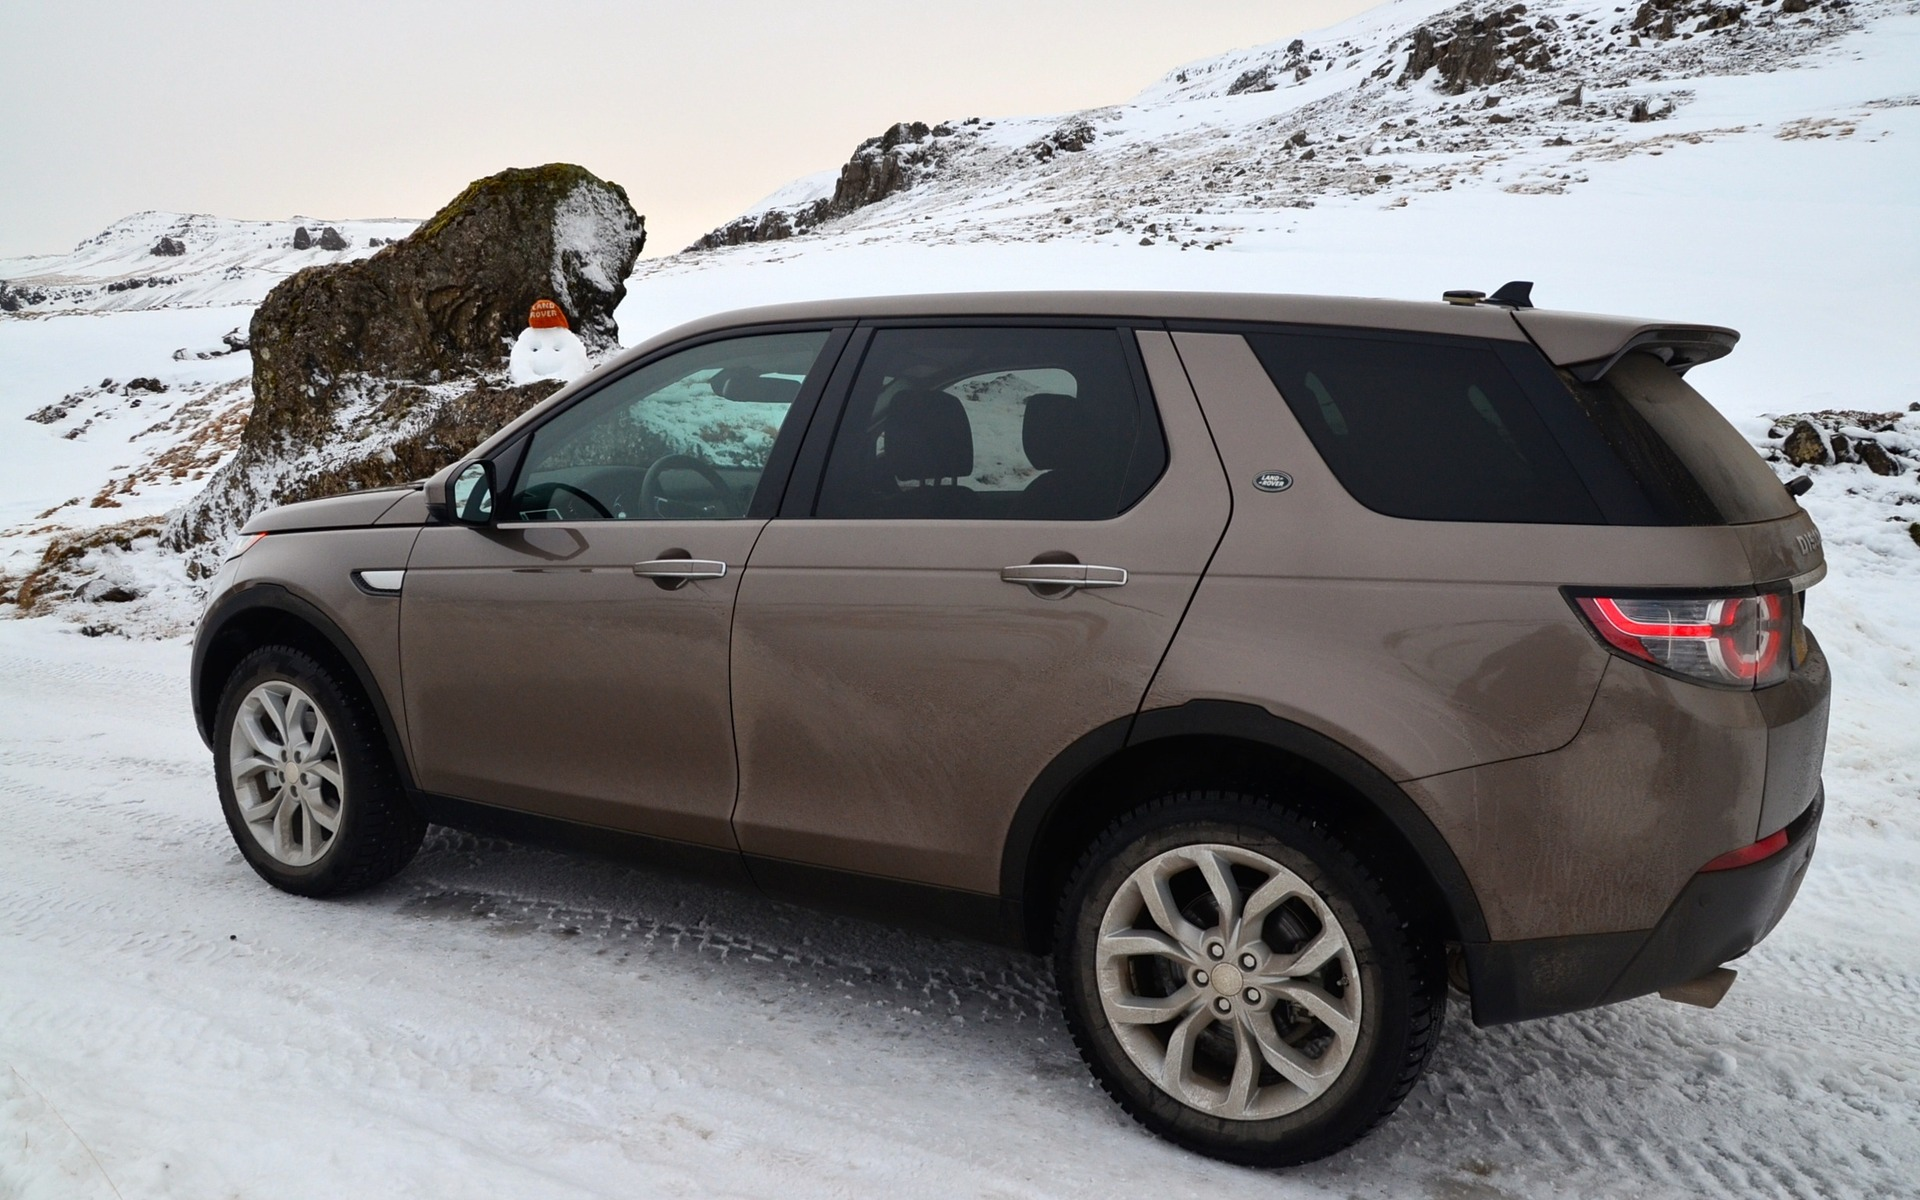 https://i.gaw.to/photos/1/8/3/183591_2015_Land_Rover_Discovery.jpg